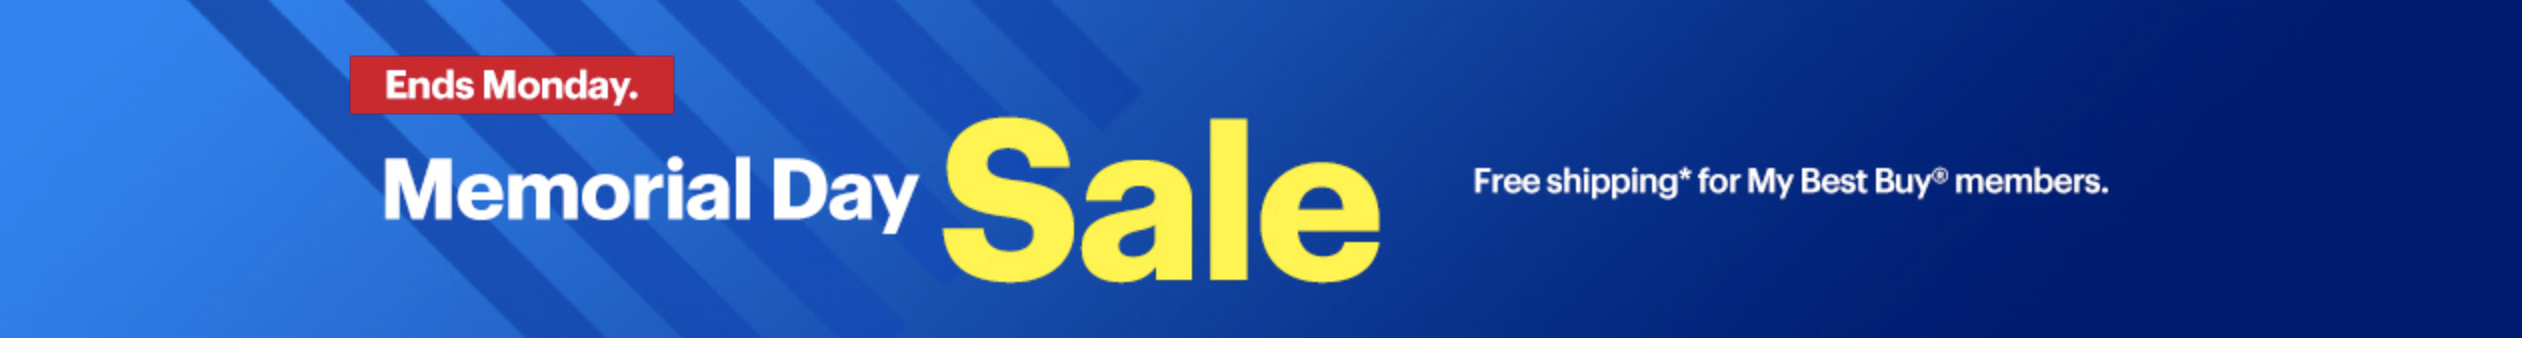 Apple Deals In Best Buy S 2019 Memorial Day Sale Appleosophy